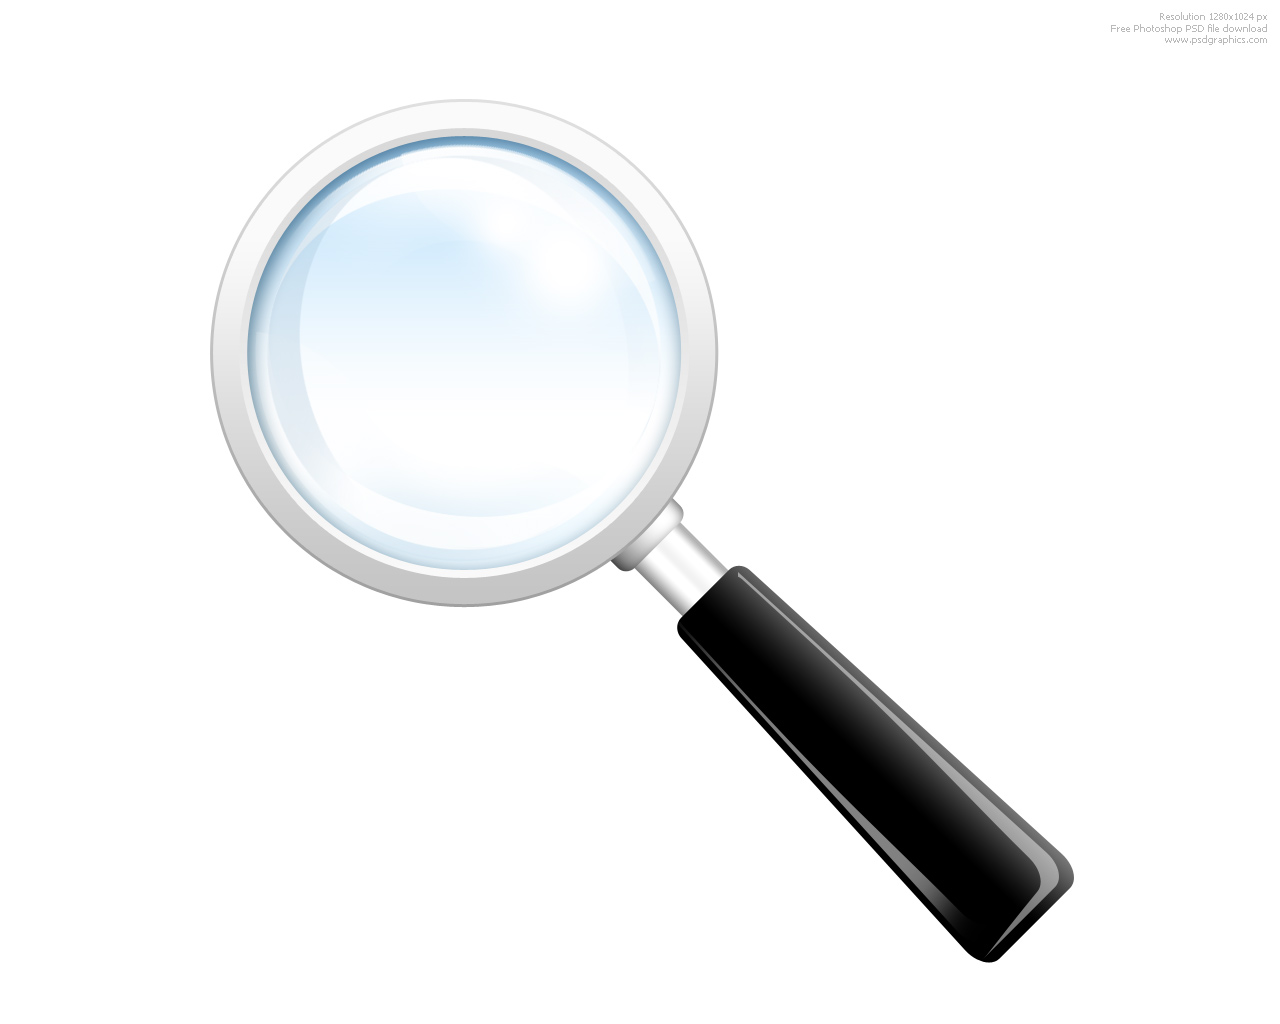 16 Facebook Search Magnifying Glass Icon Images